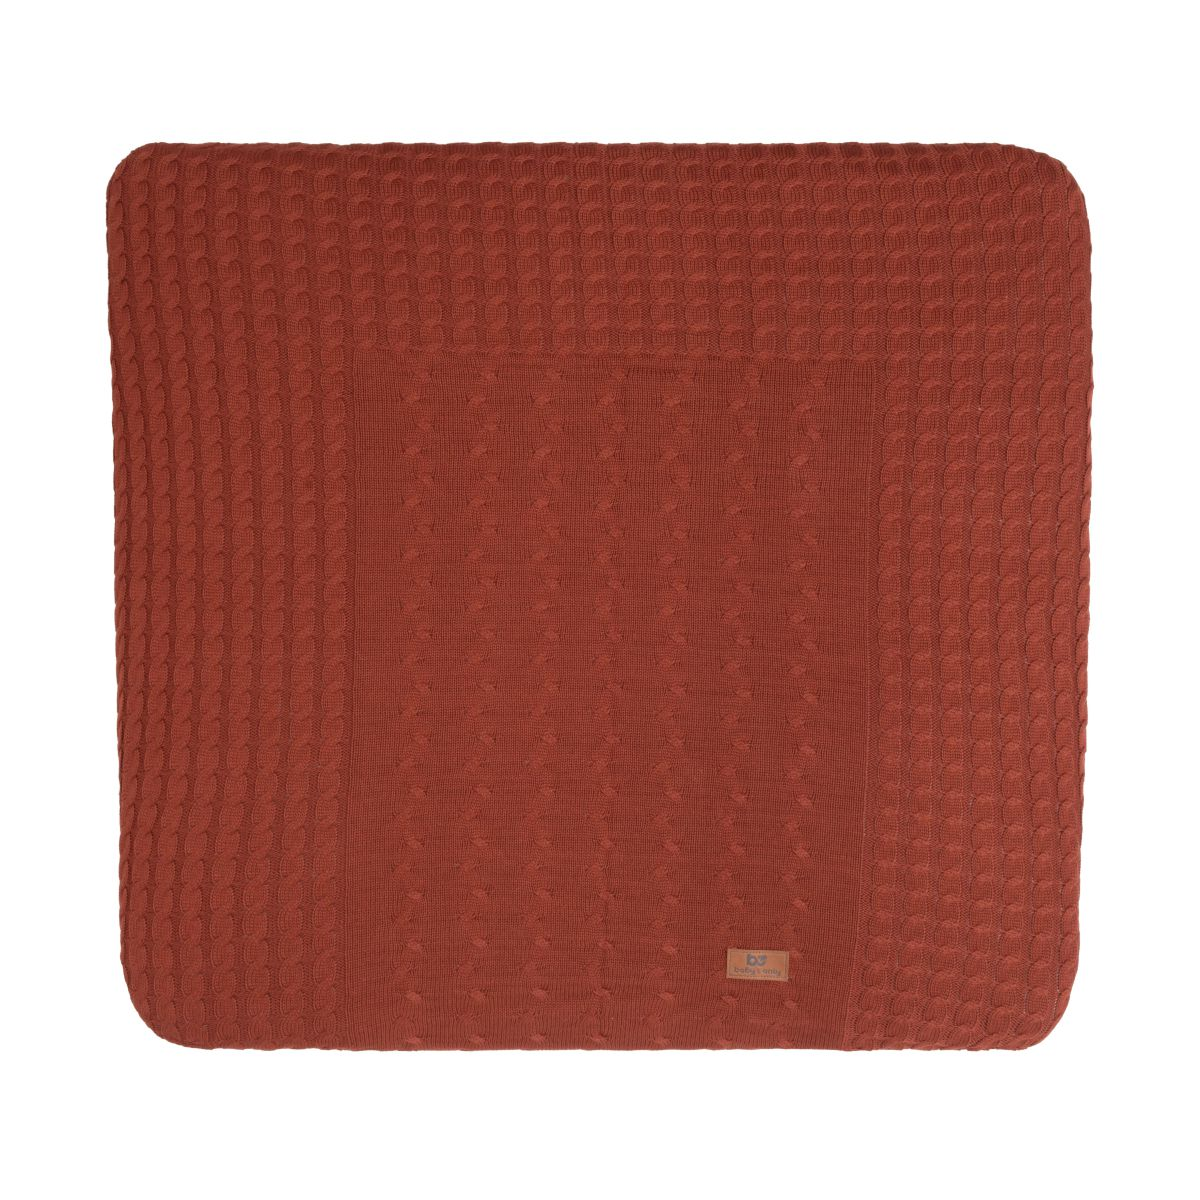 changing pad cover cable brique 75x85